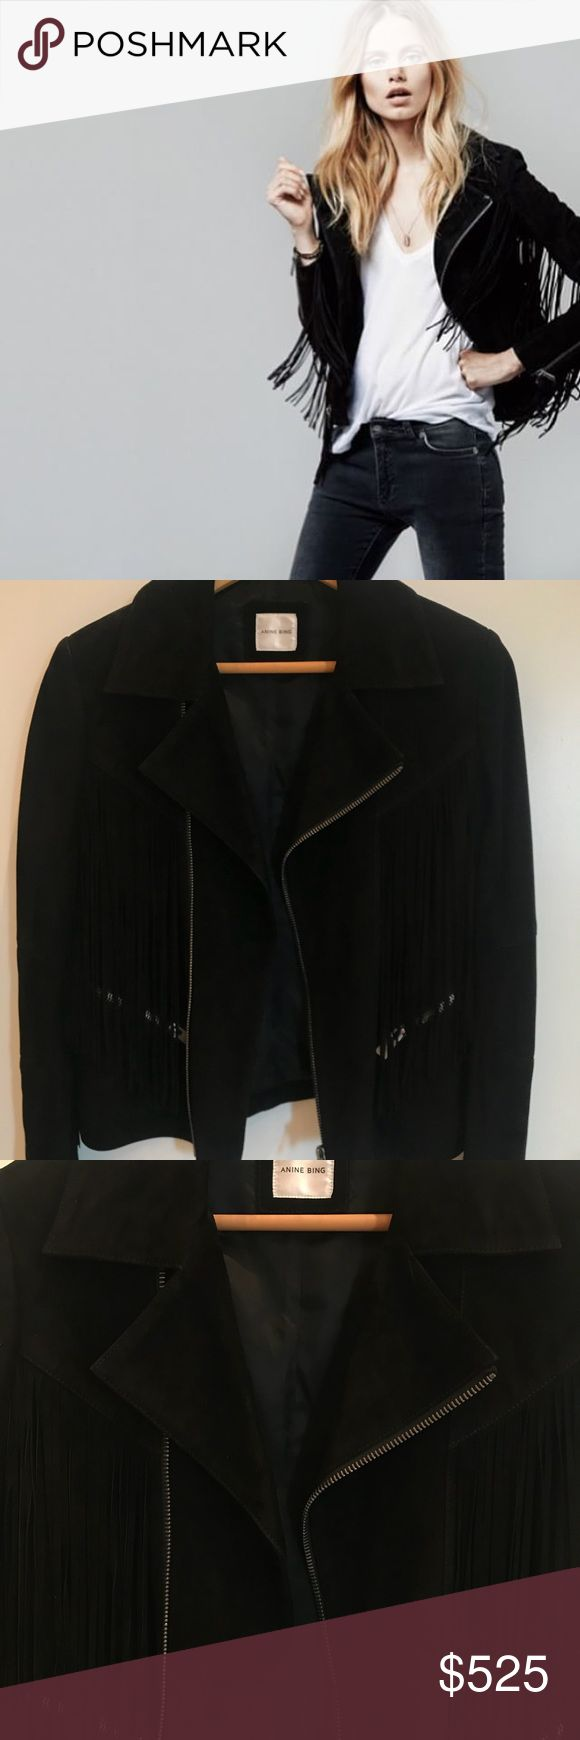 Anine Bing Fringe Suede Jacket Amazing Suede Jacket with beautiful fringe detail! Beautifully crafted. Black. Size Small and fits tts. Mint condition, worn only a few times. Grab it quick, Coachella is coming! Anine Bing Jackets & Coats